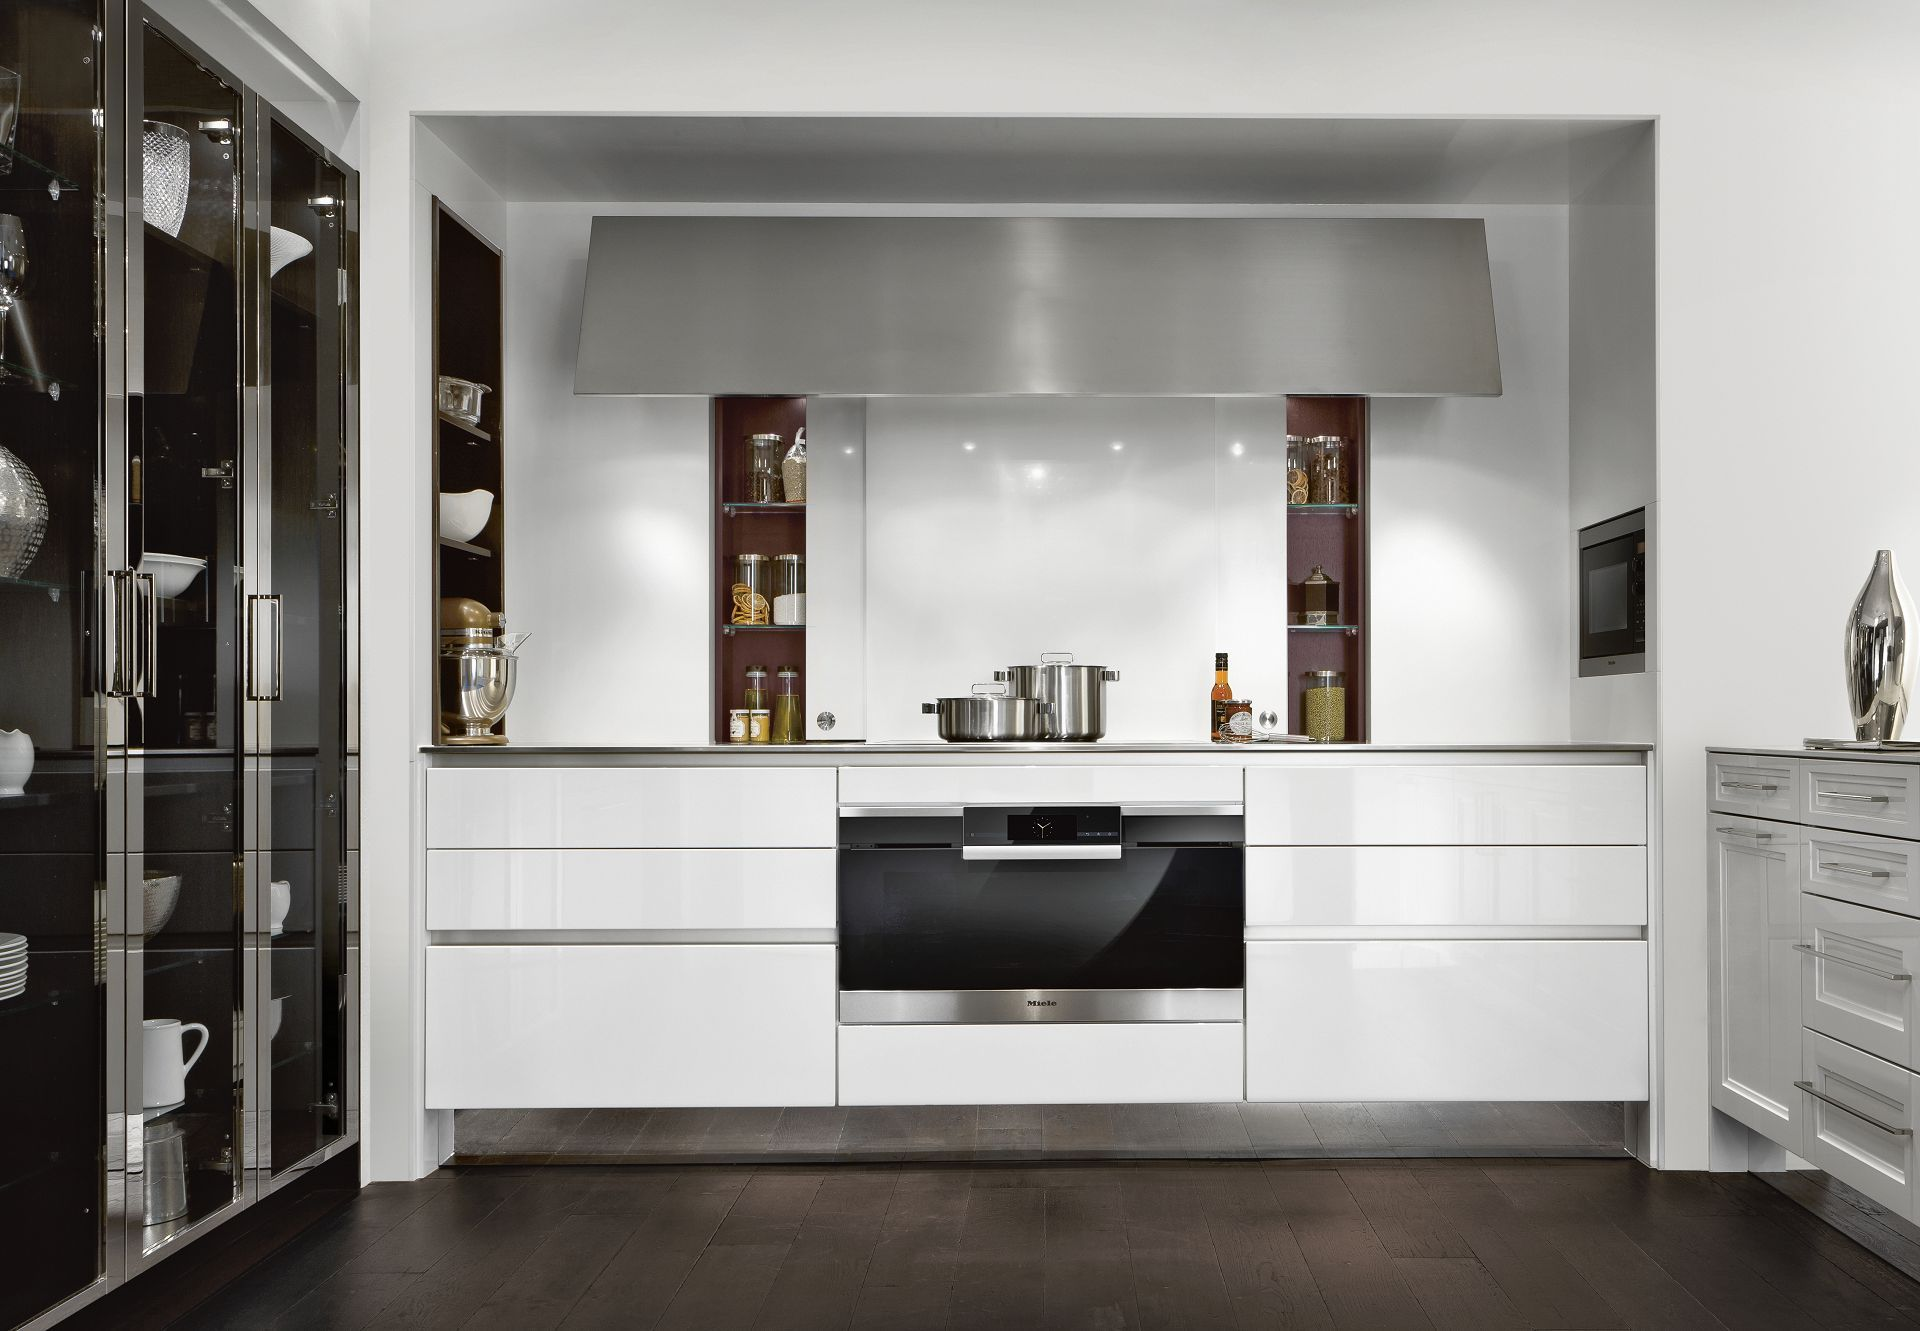 siematic classic beauxarts s2 kitchen in lotus white with on modern kitchen design that will inspire your luxury interior essential elements id=63240